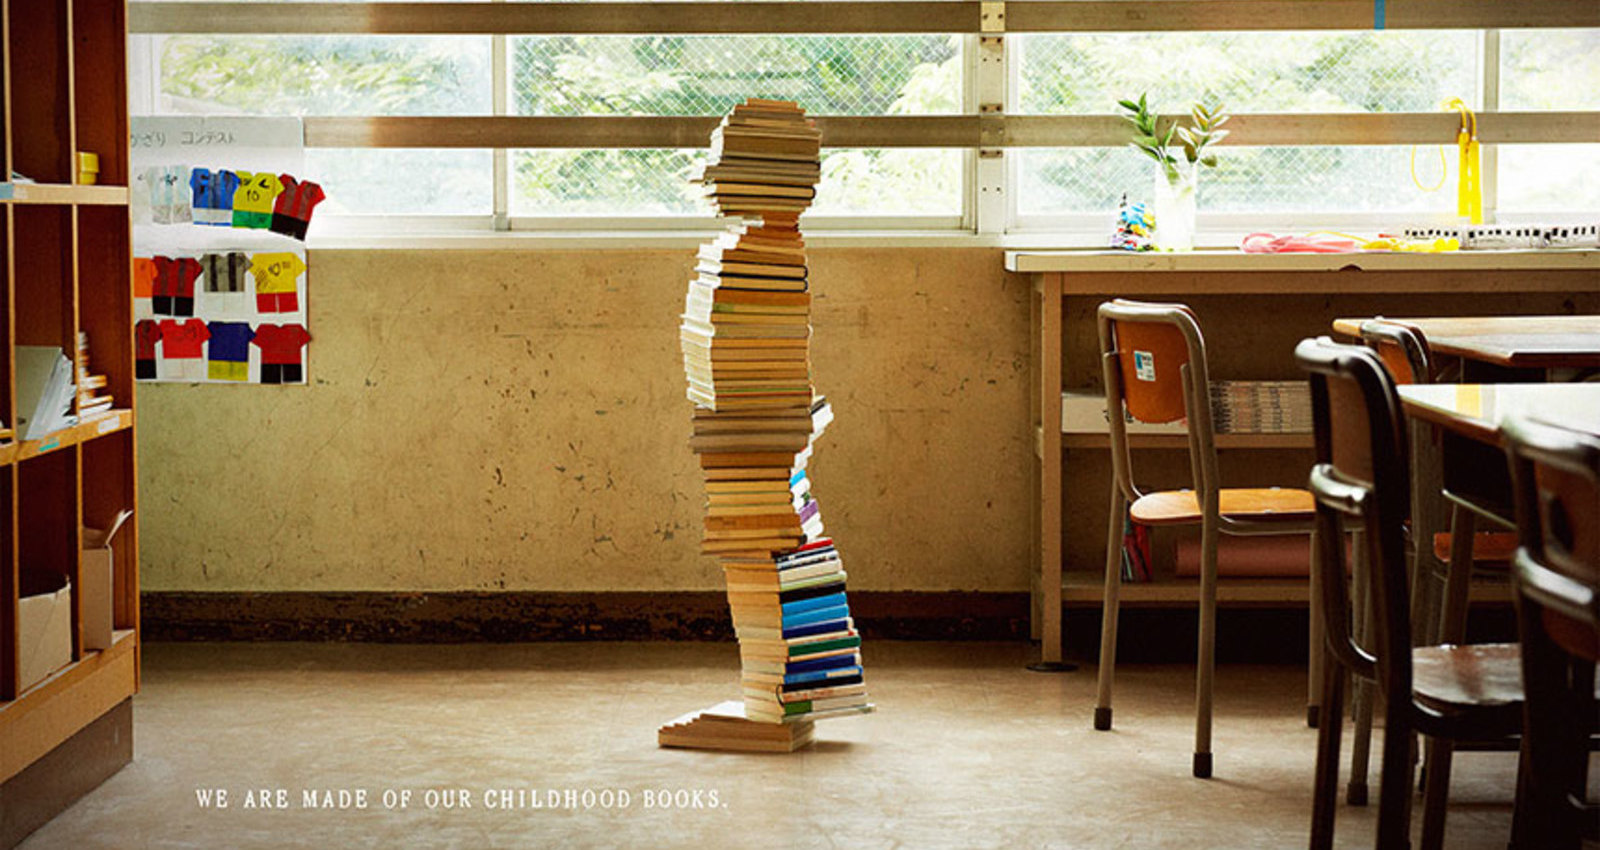 Books build children.